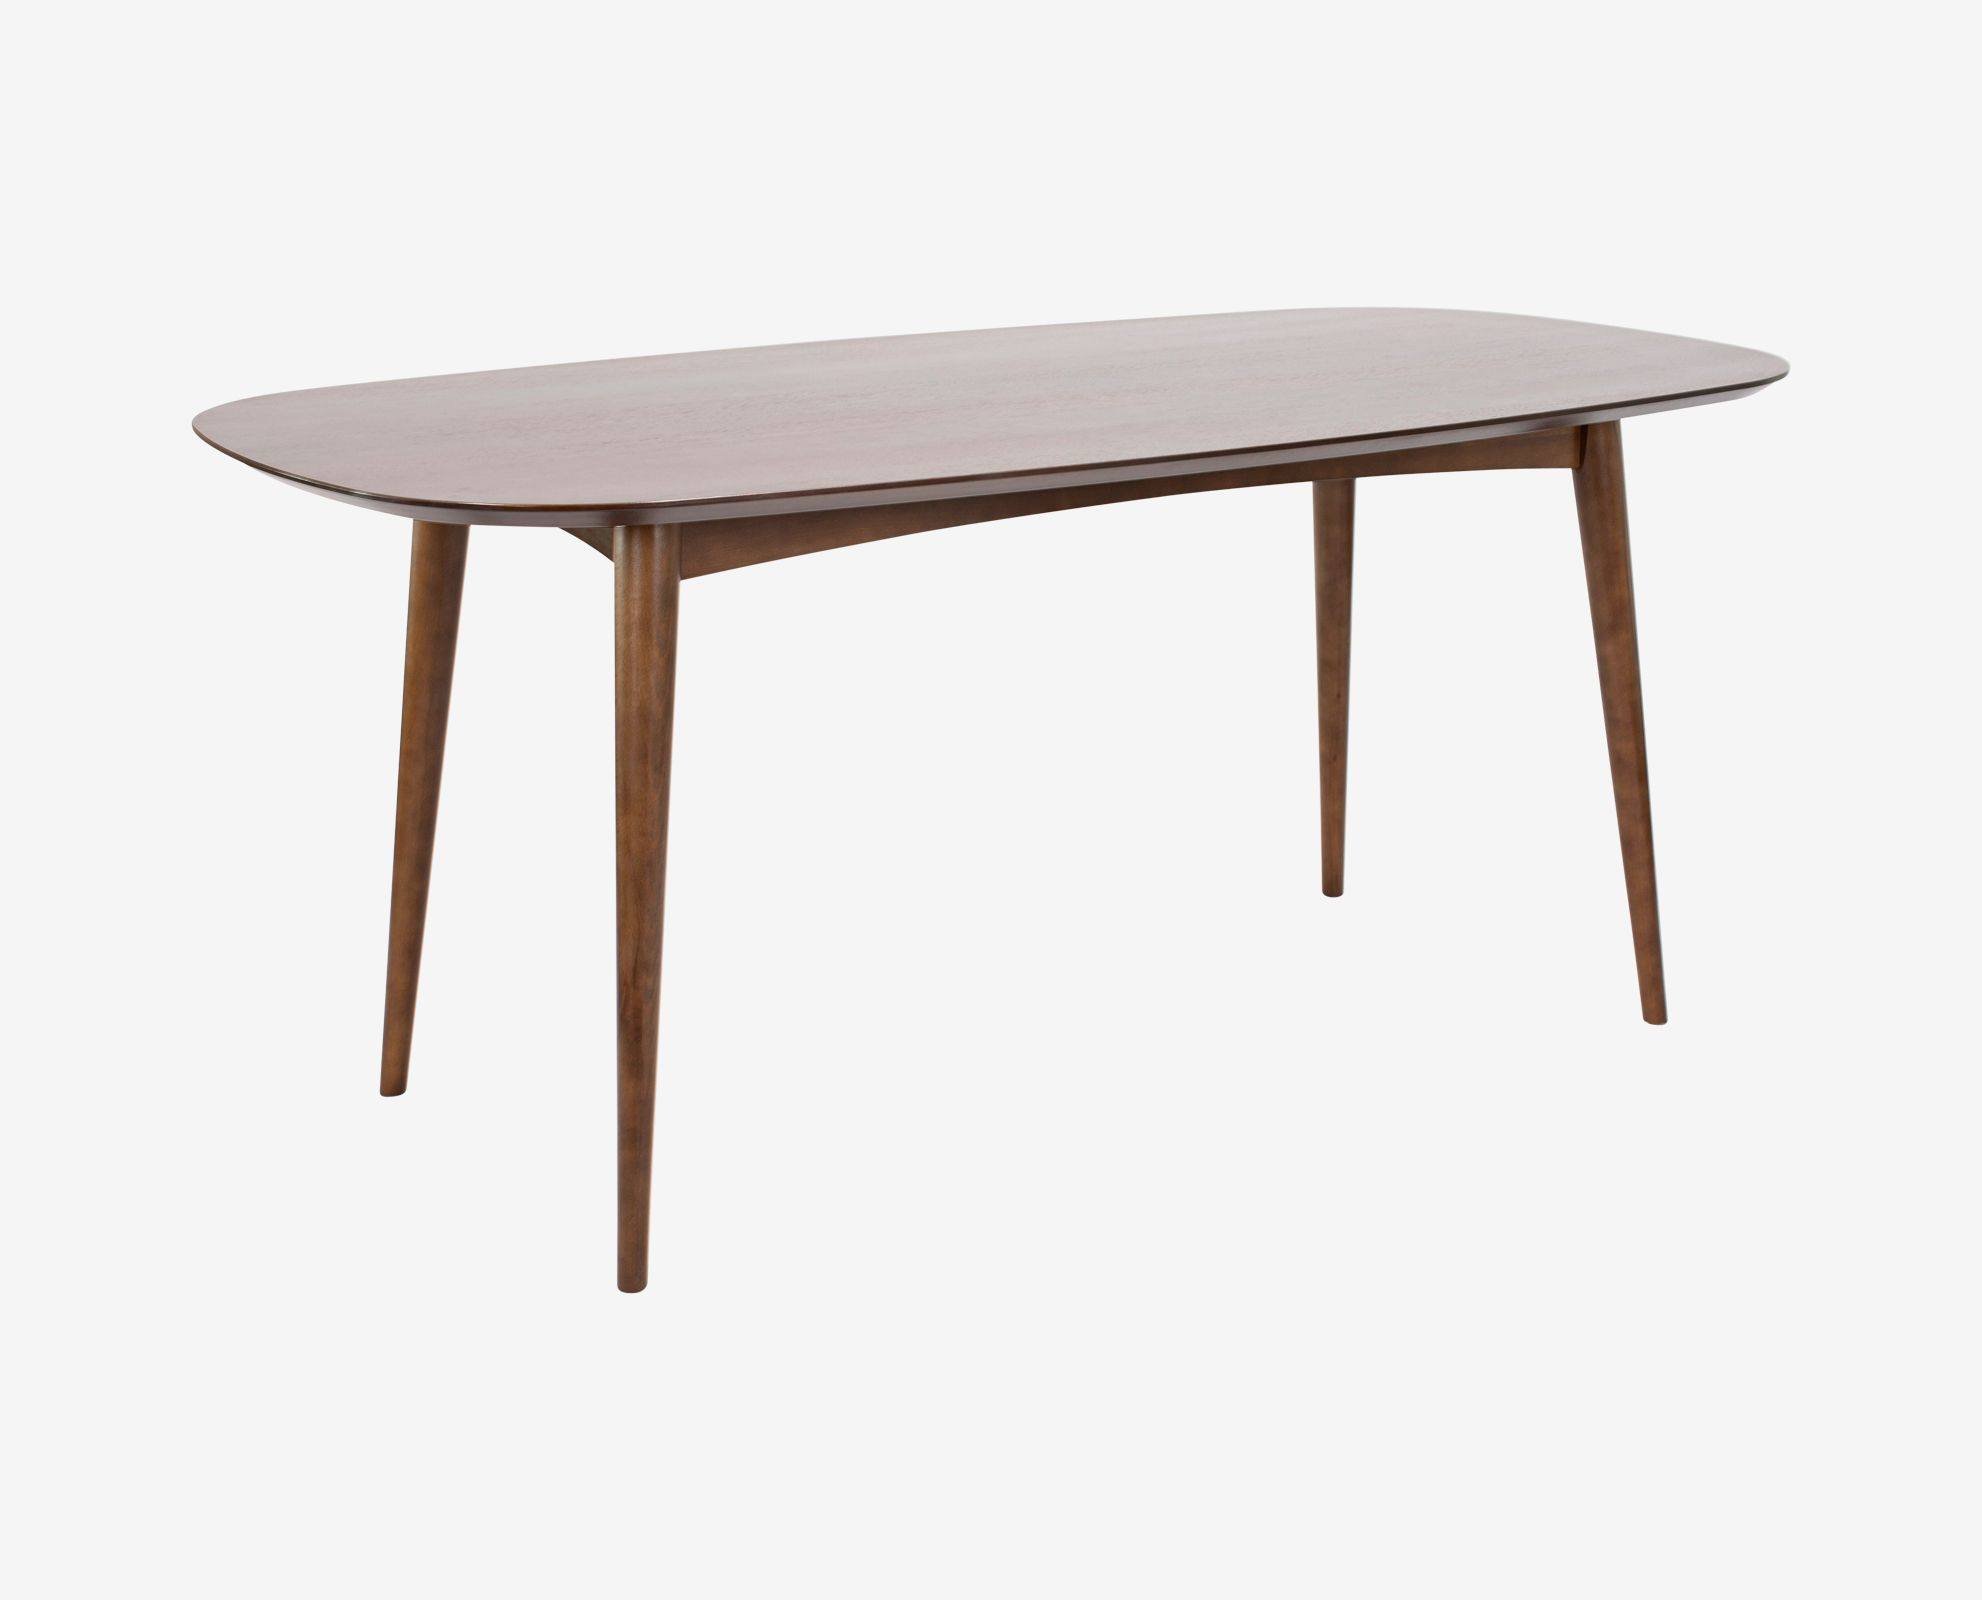 Scandinavian Designs  Juneau Dining Table Has A Light, Mid